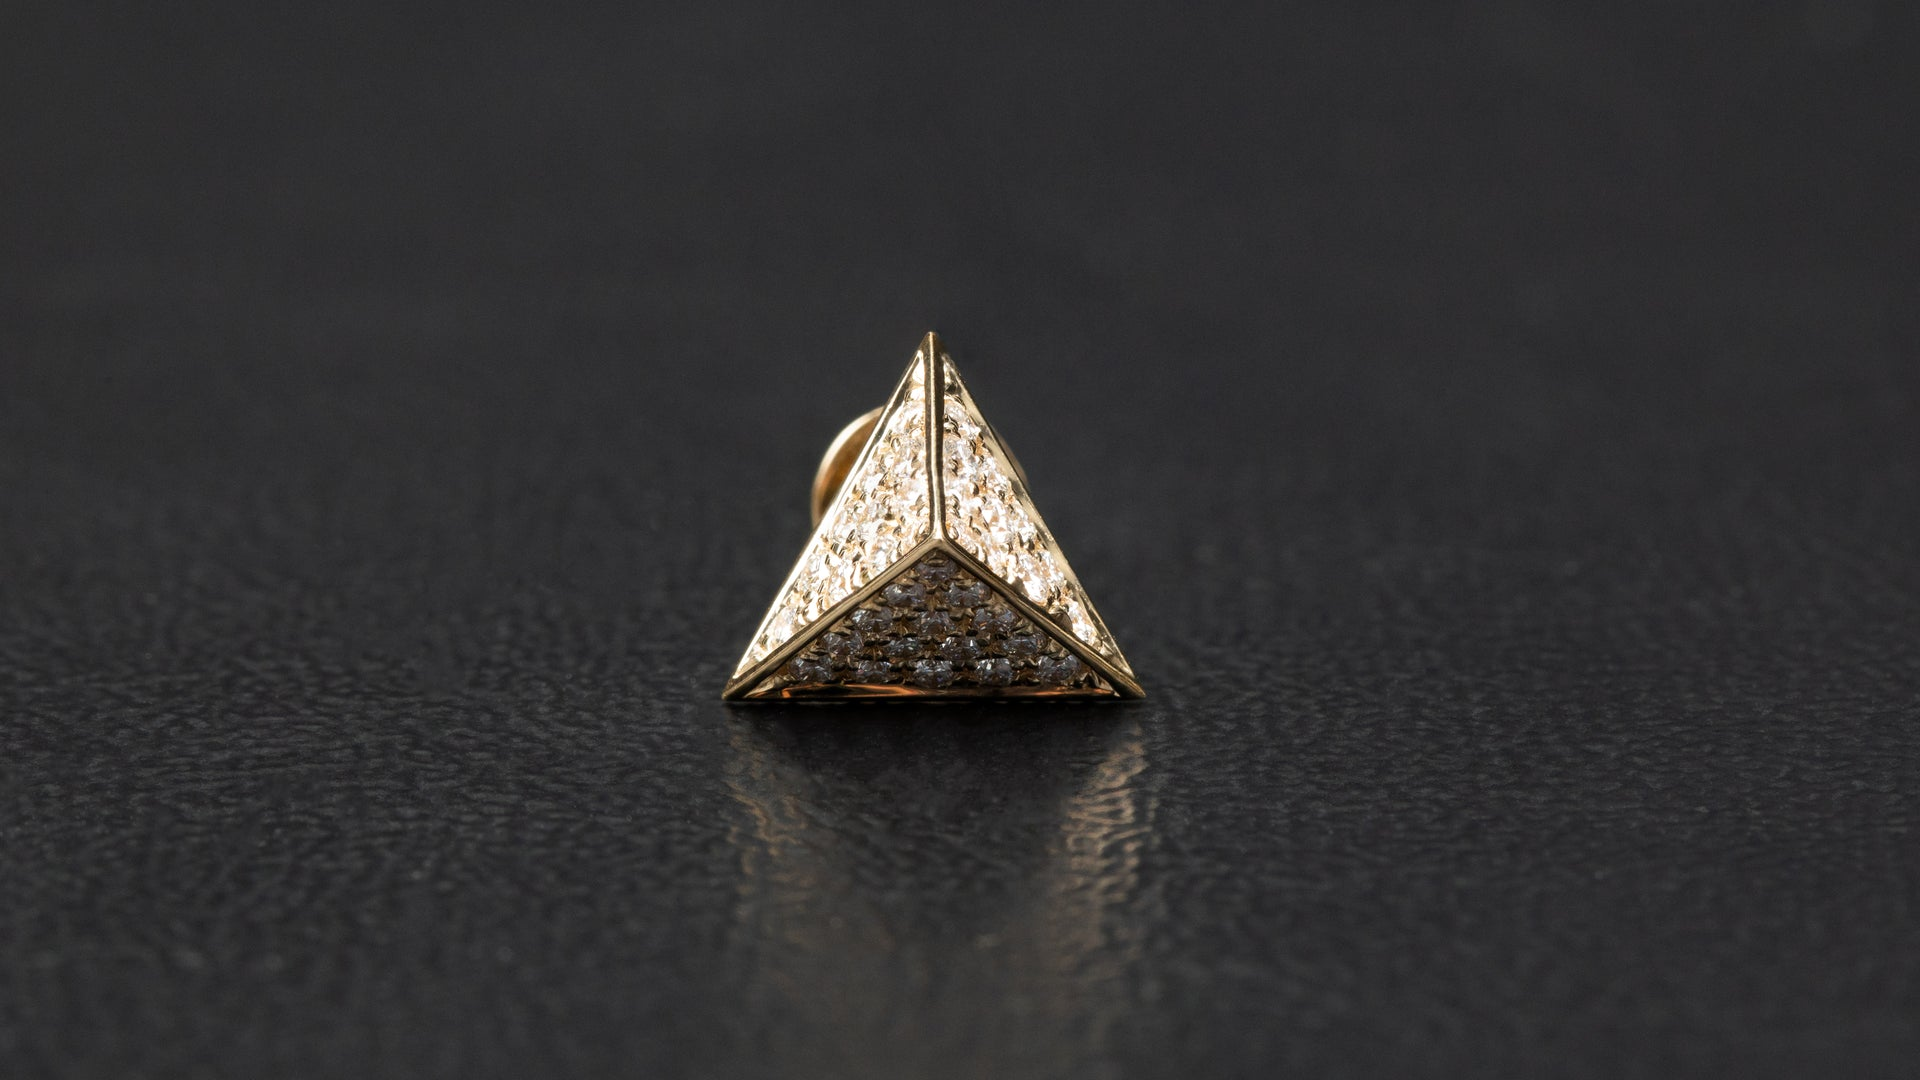 14k Yellow Gold Pyramidal Shape Diamond Earrings